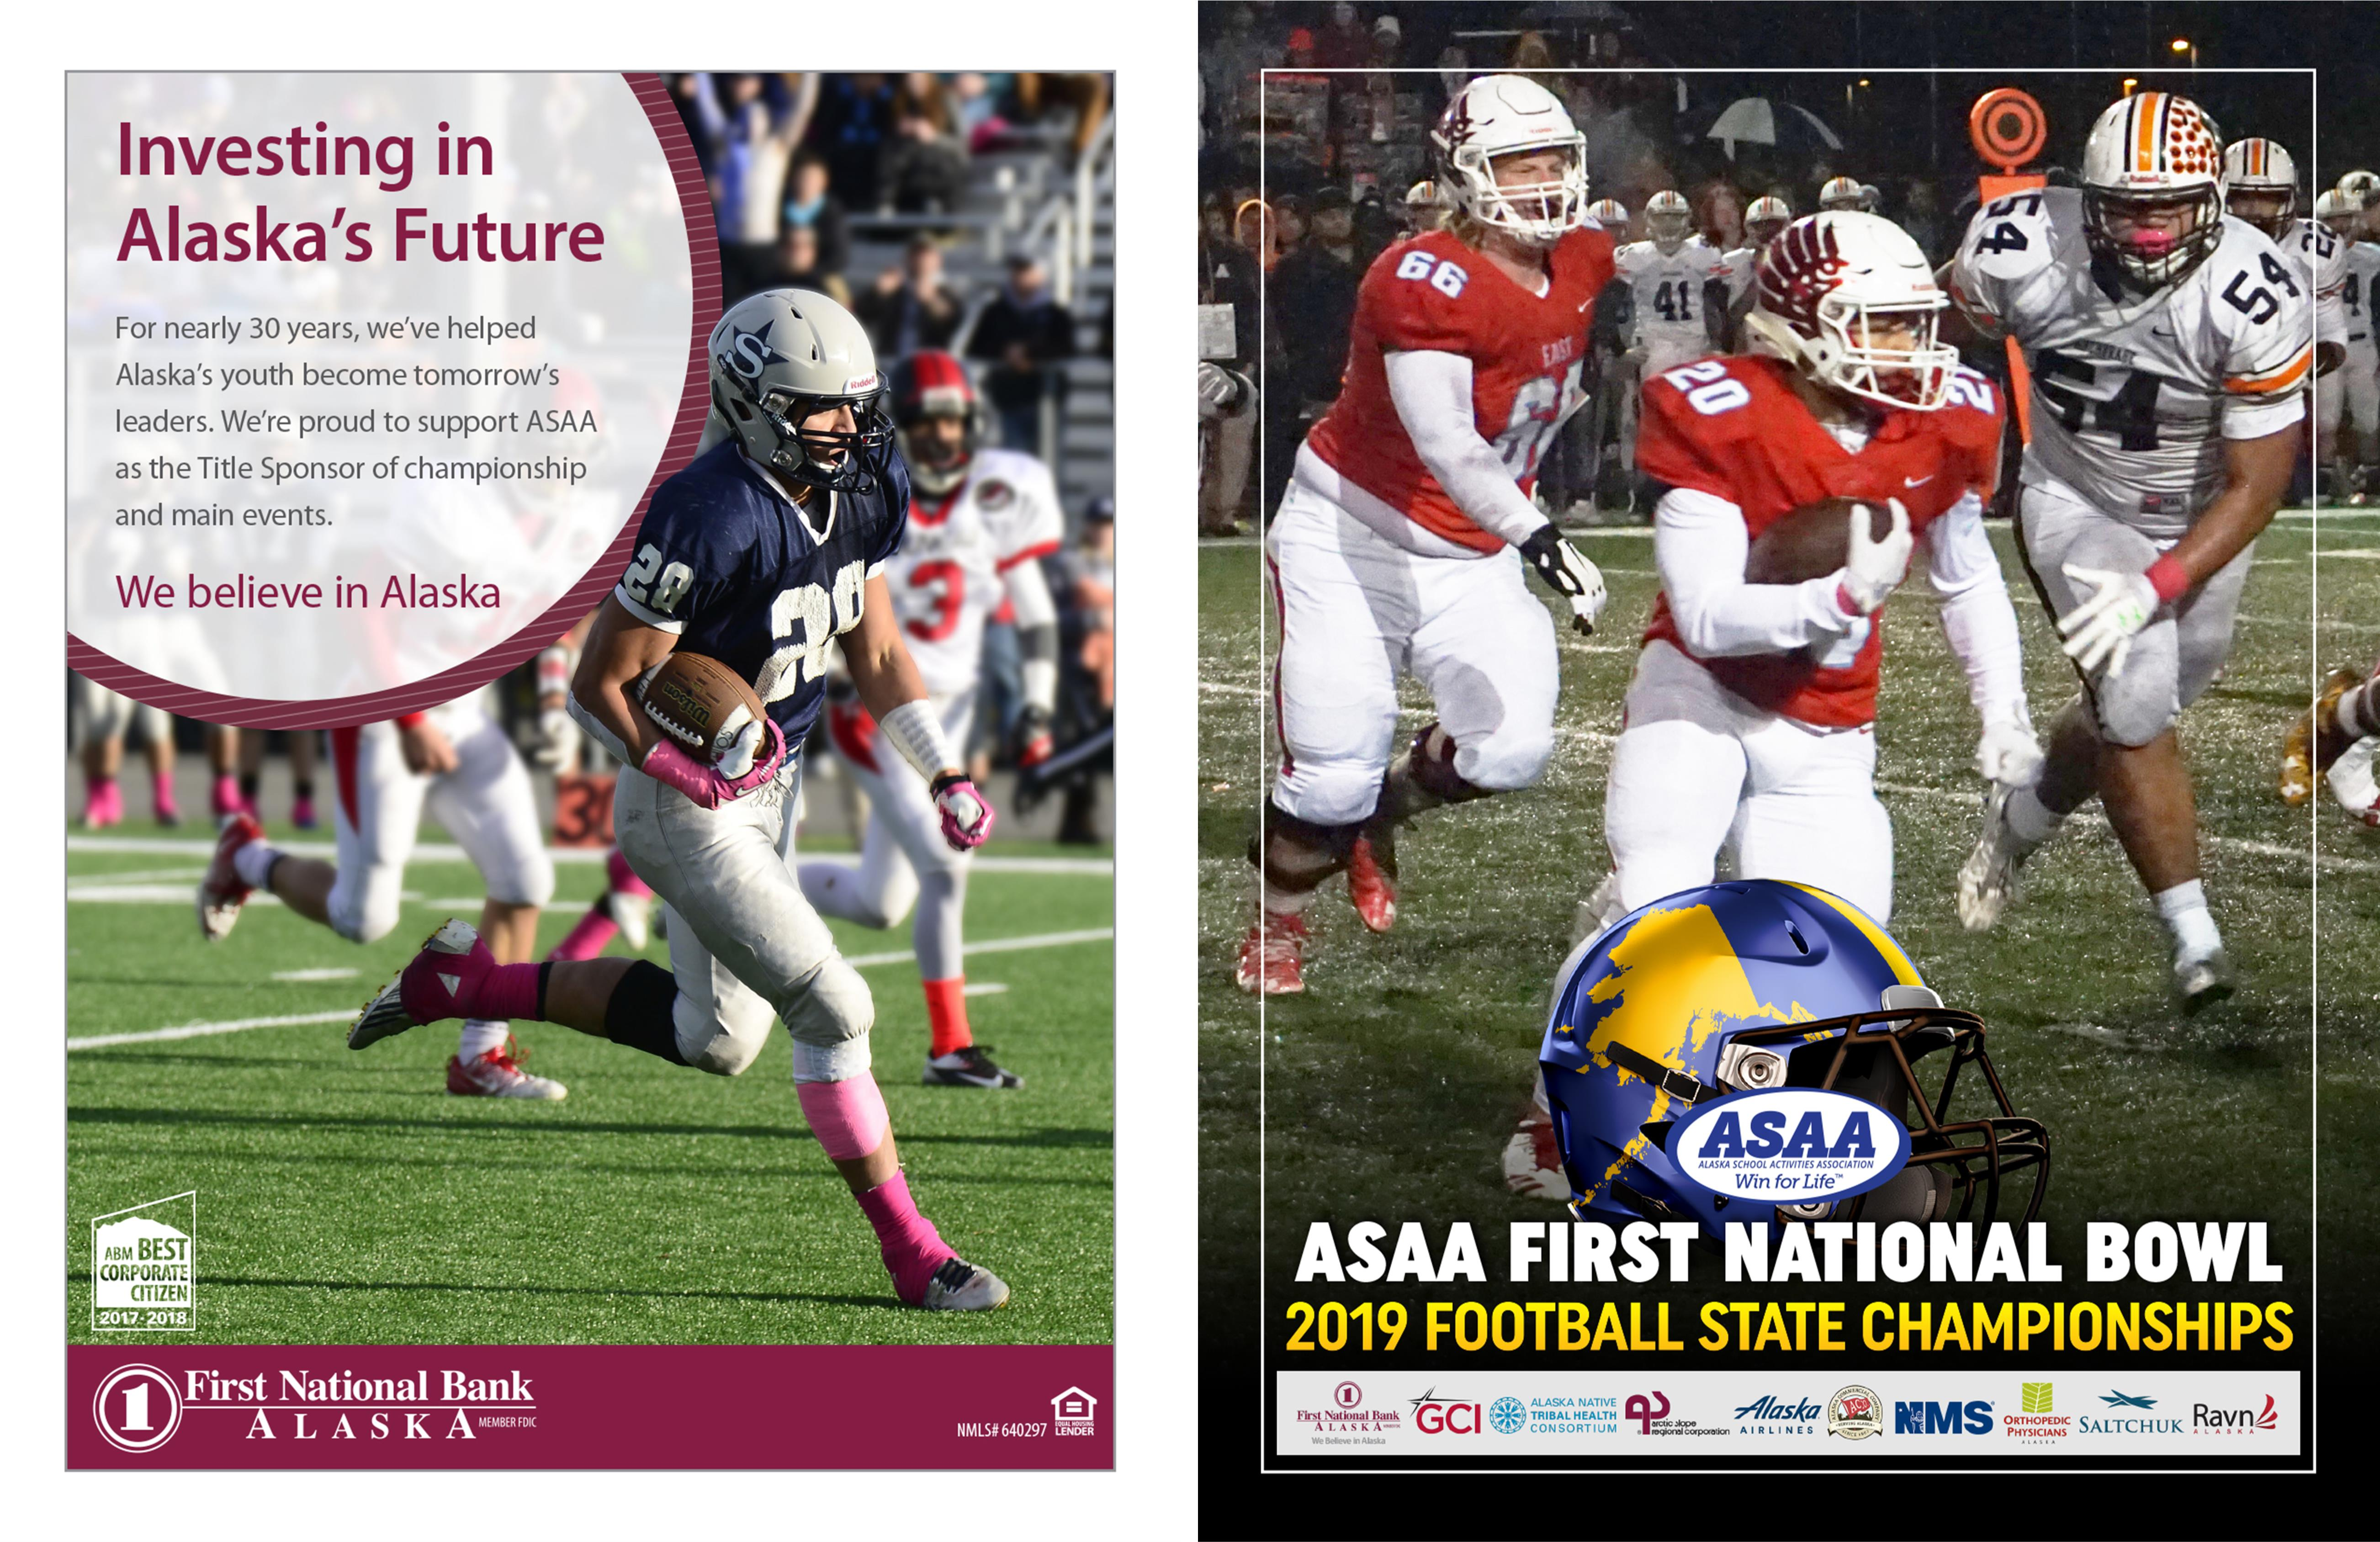 2019 ASAA/First National Bowl Series Football State Championships Program cover image